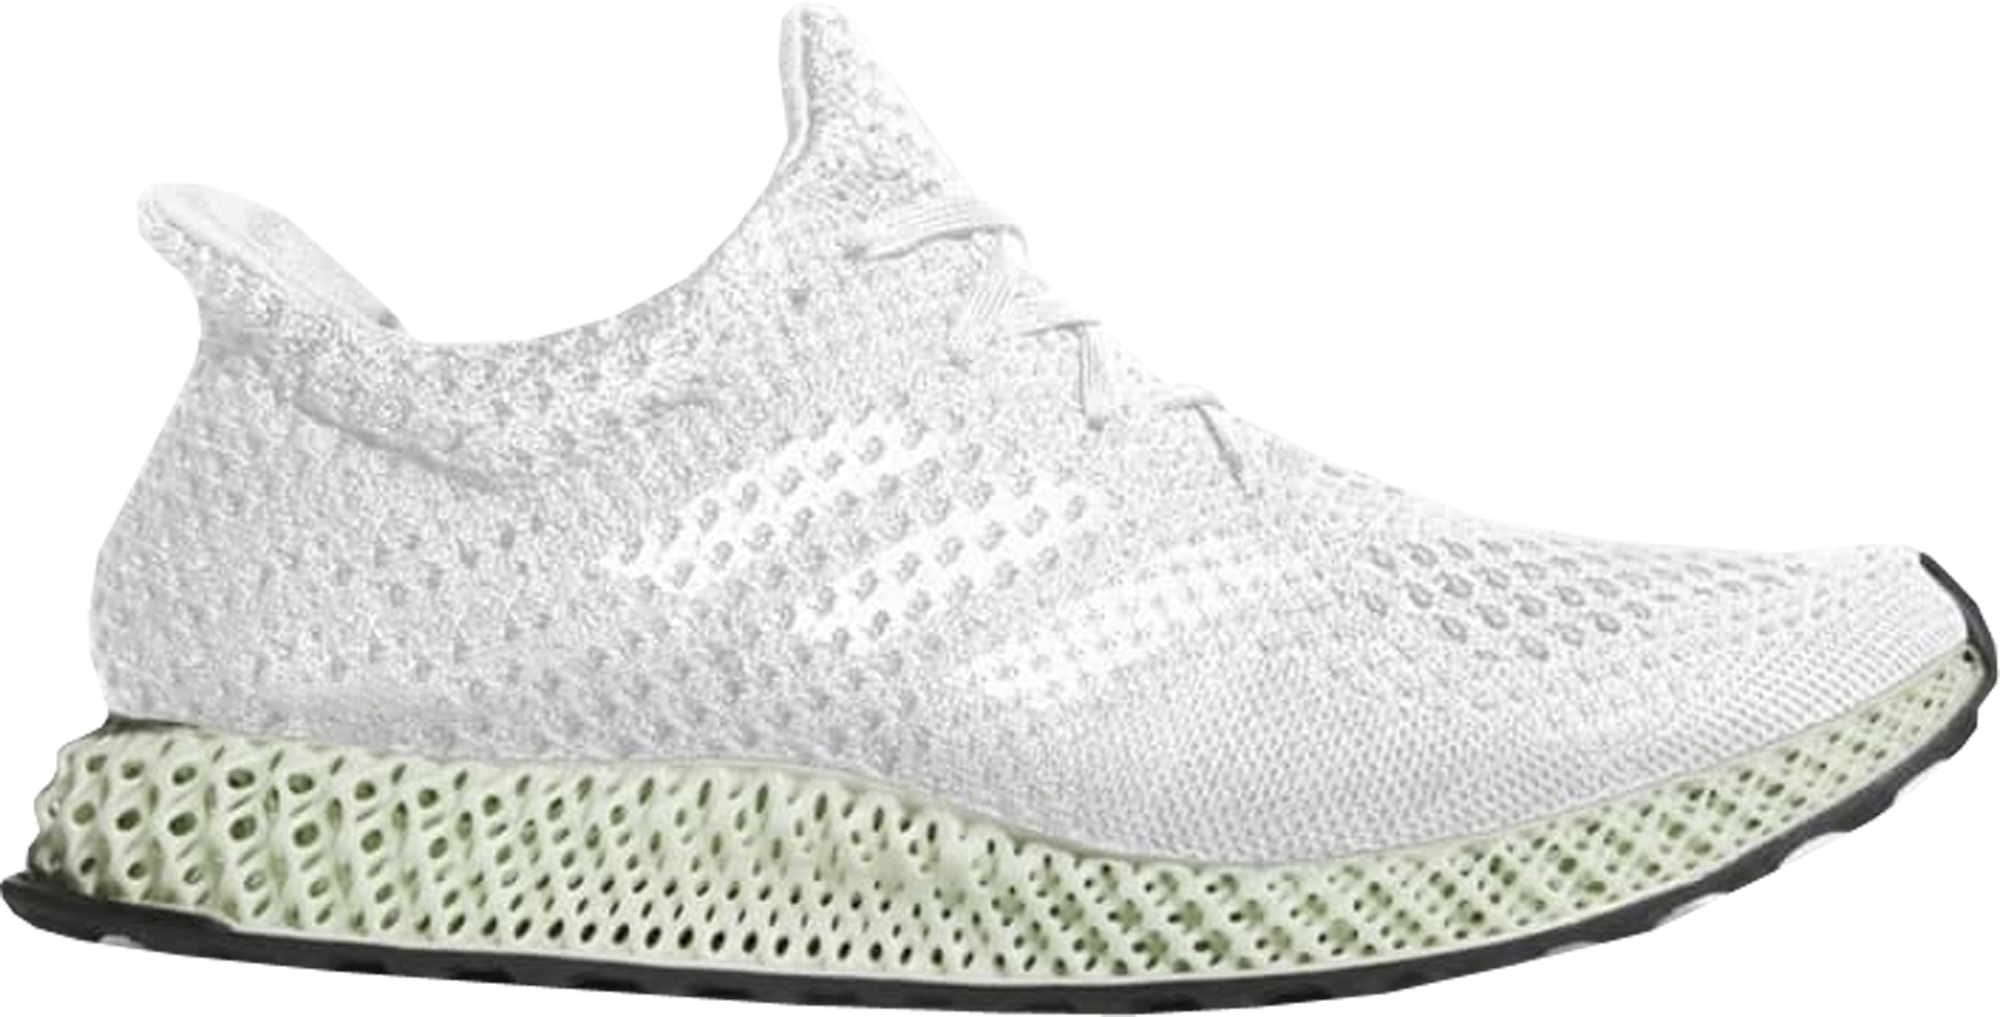 adidas Futurecraft 4D White Ash Green